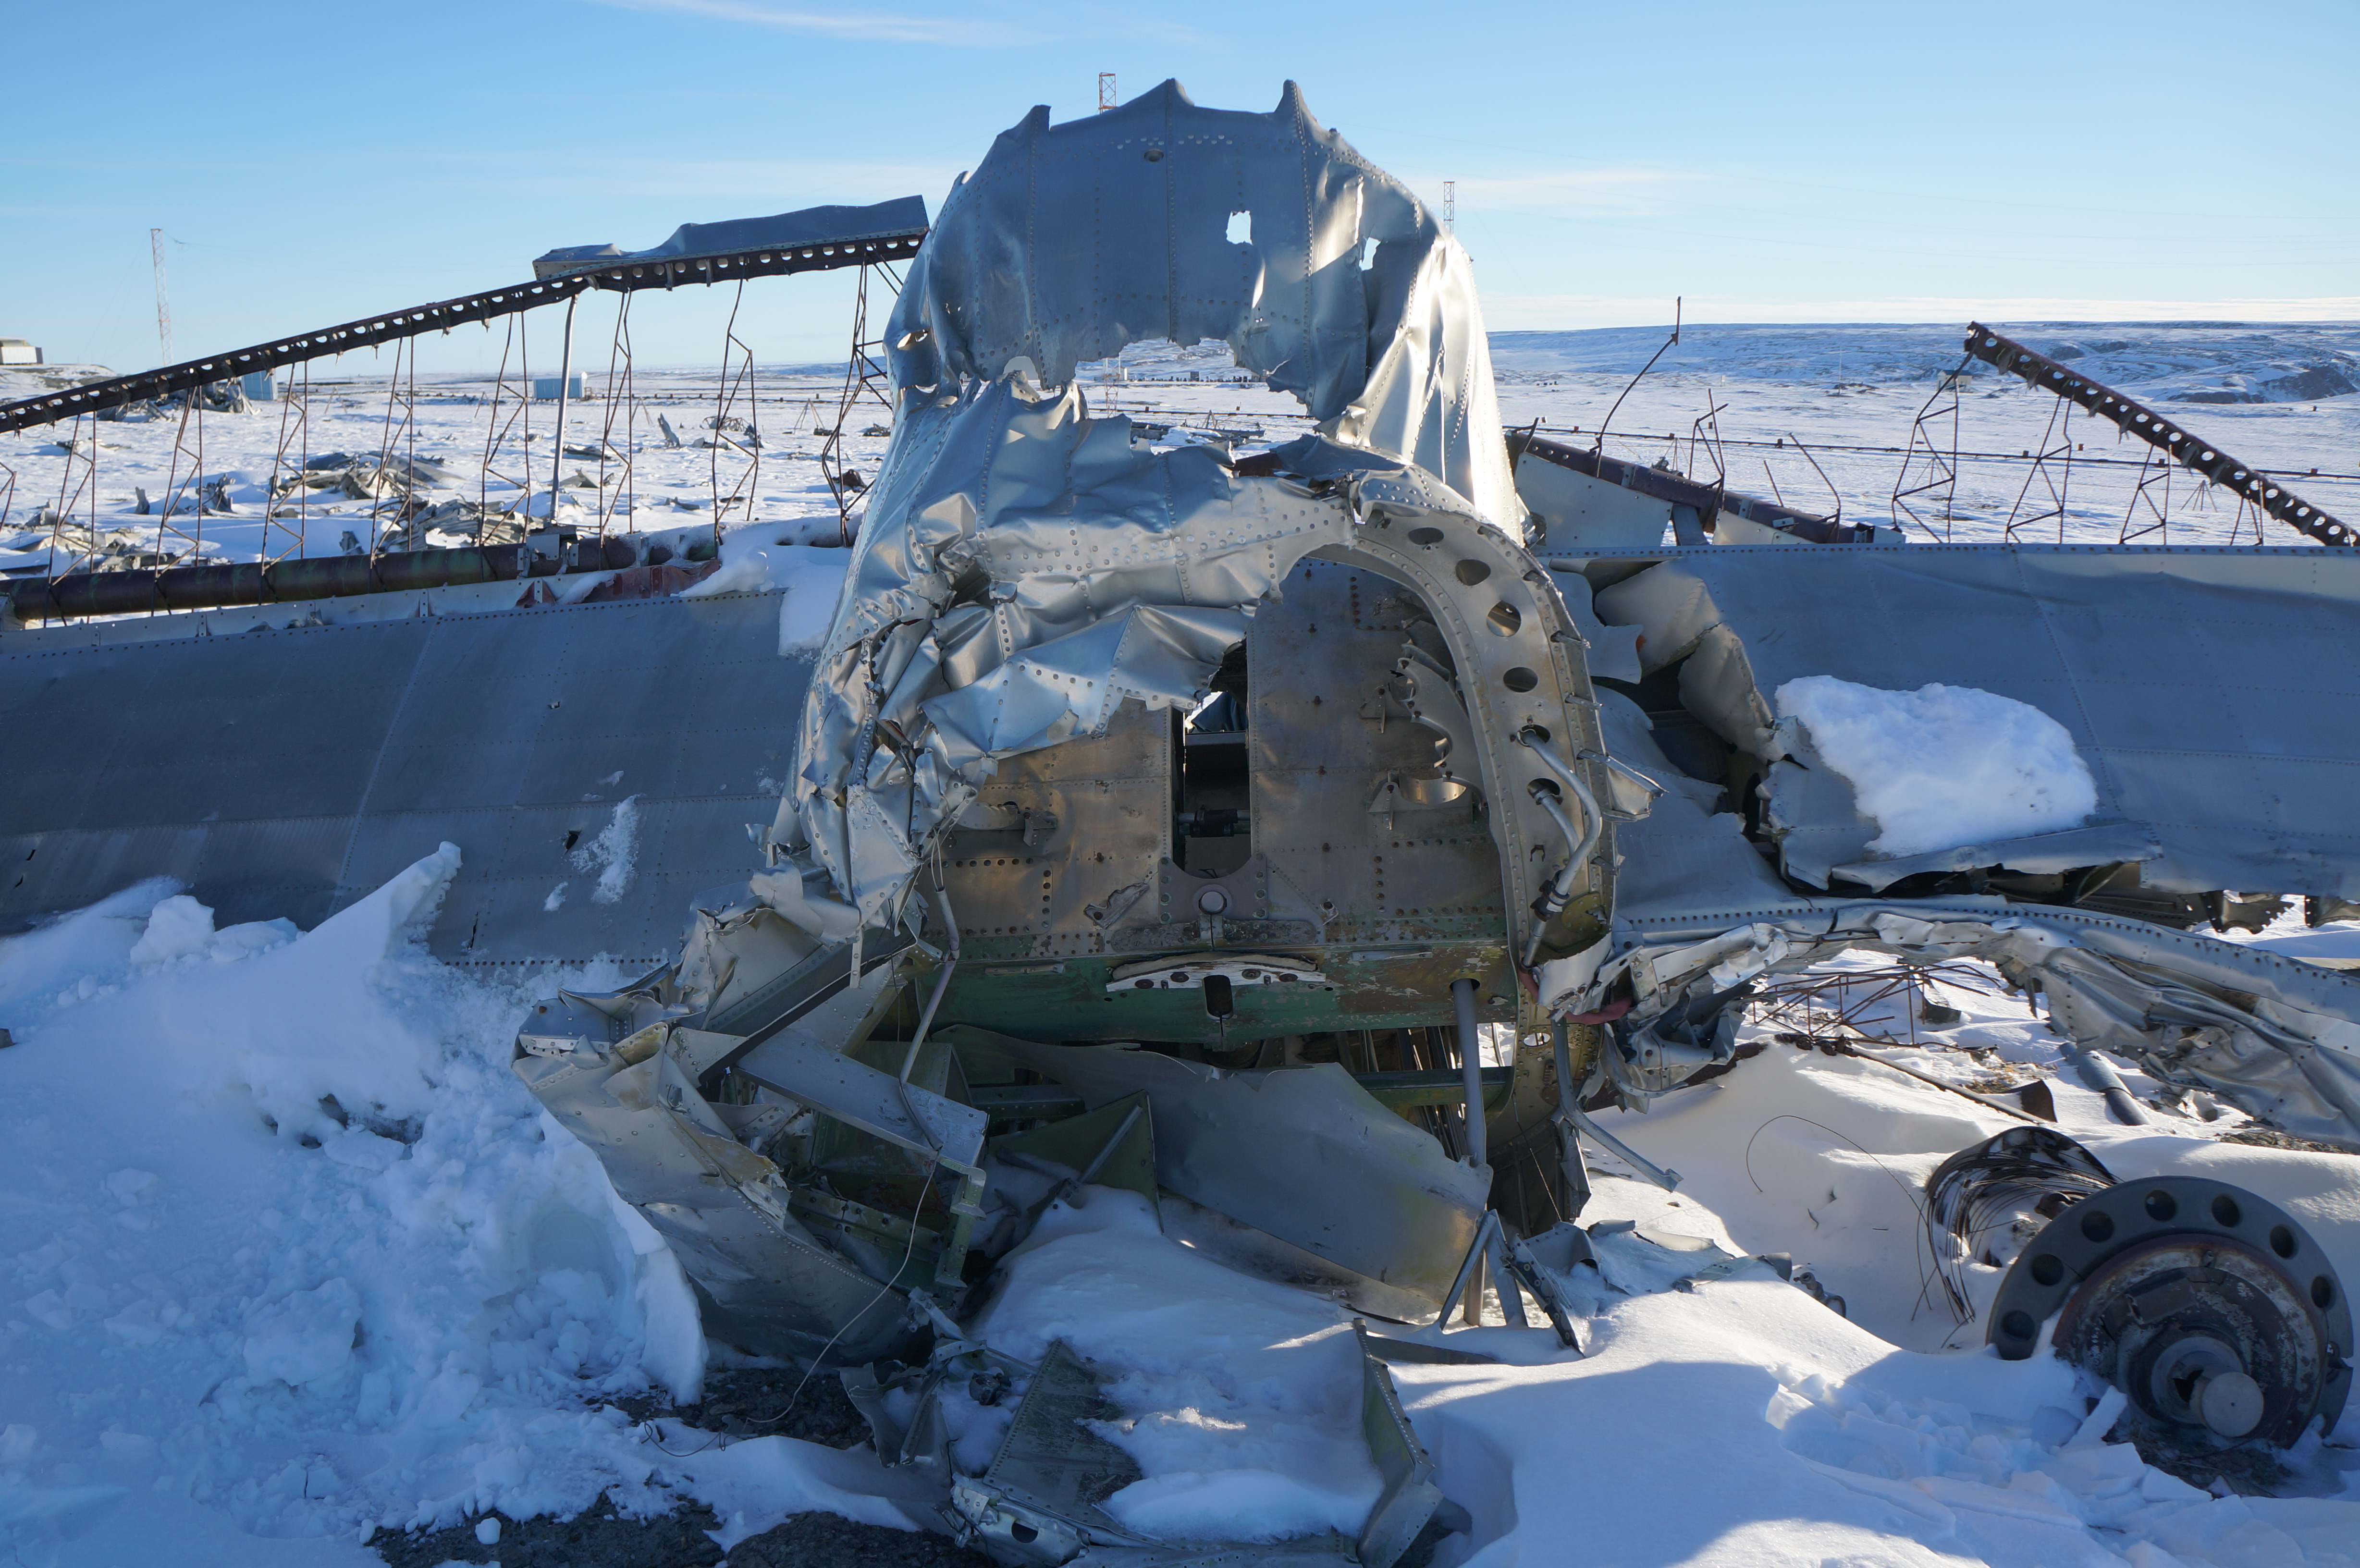 The wreckage from Lancaster 965 still sits near CFS Alert, nearly 70 years after the crash. (Submitted by Richard Mayne/RCAF)